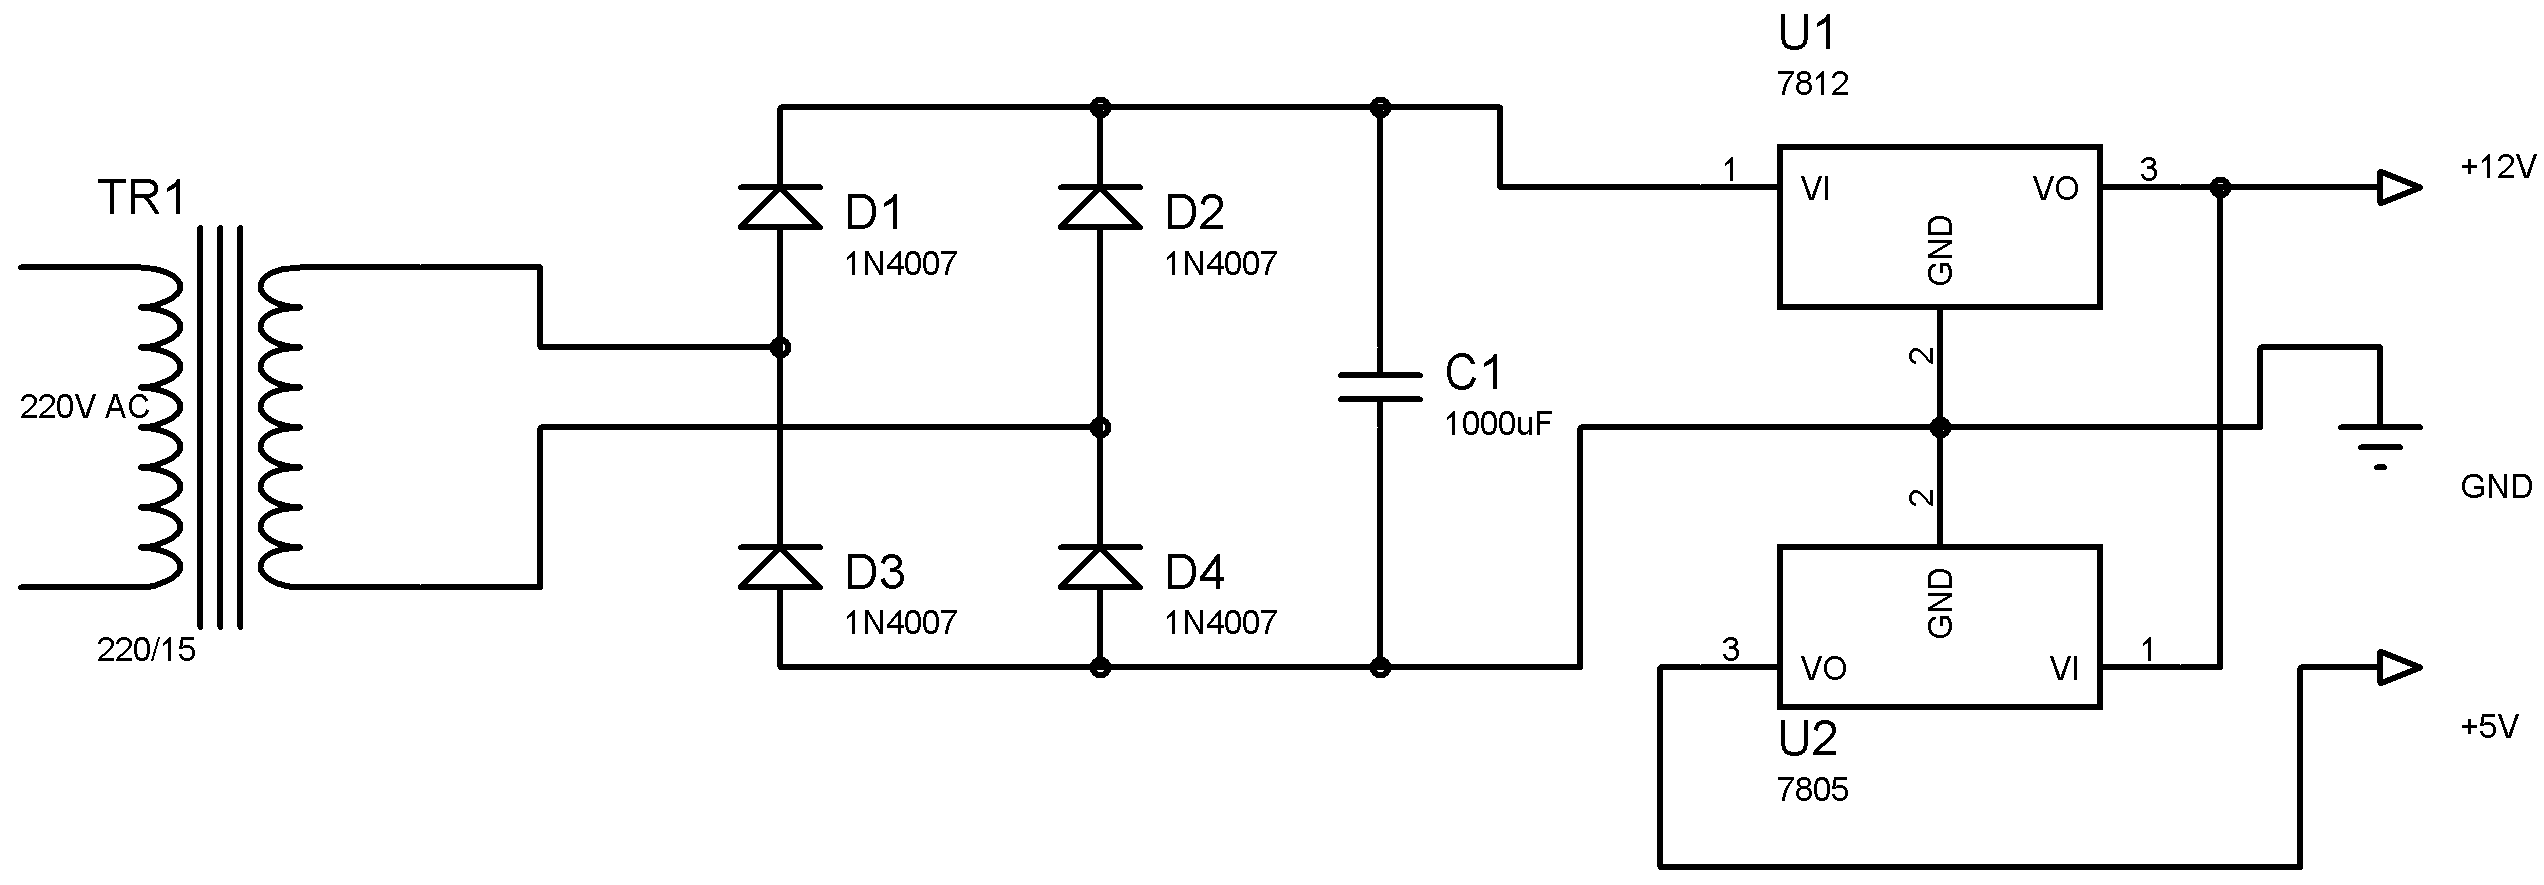 Water Level Indicator Controller Using Pic Microcontroller Electronics Circuit Diagram Projects 1 Power Supply Section